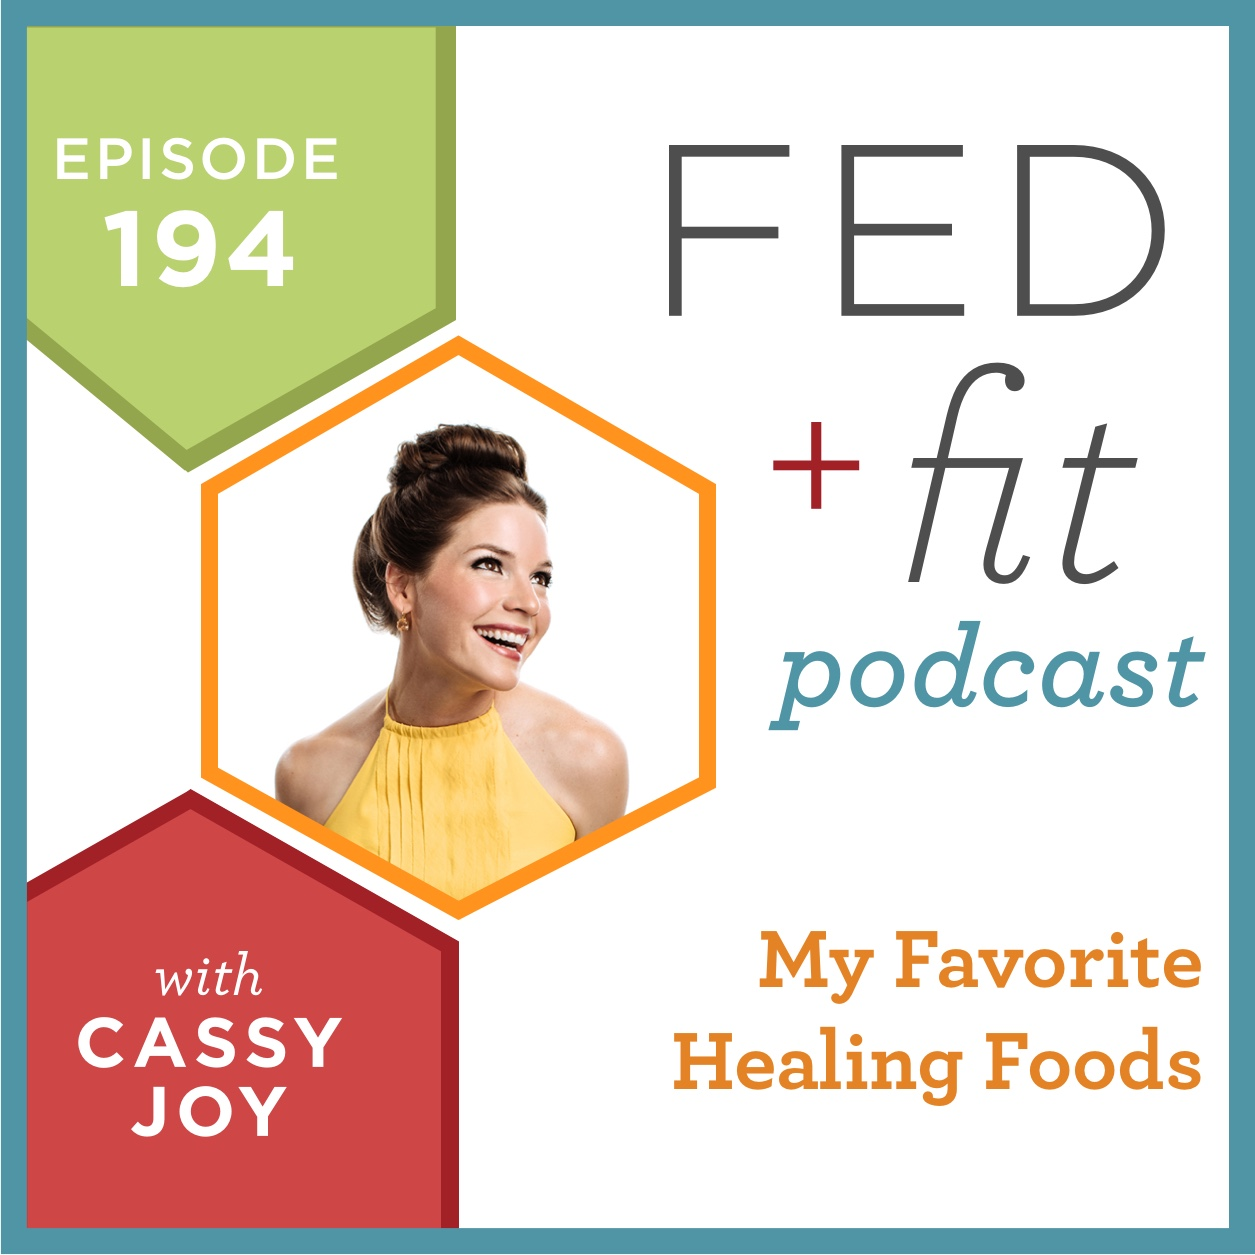 Favorite healing foods